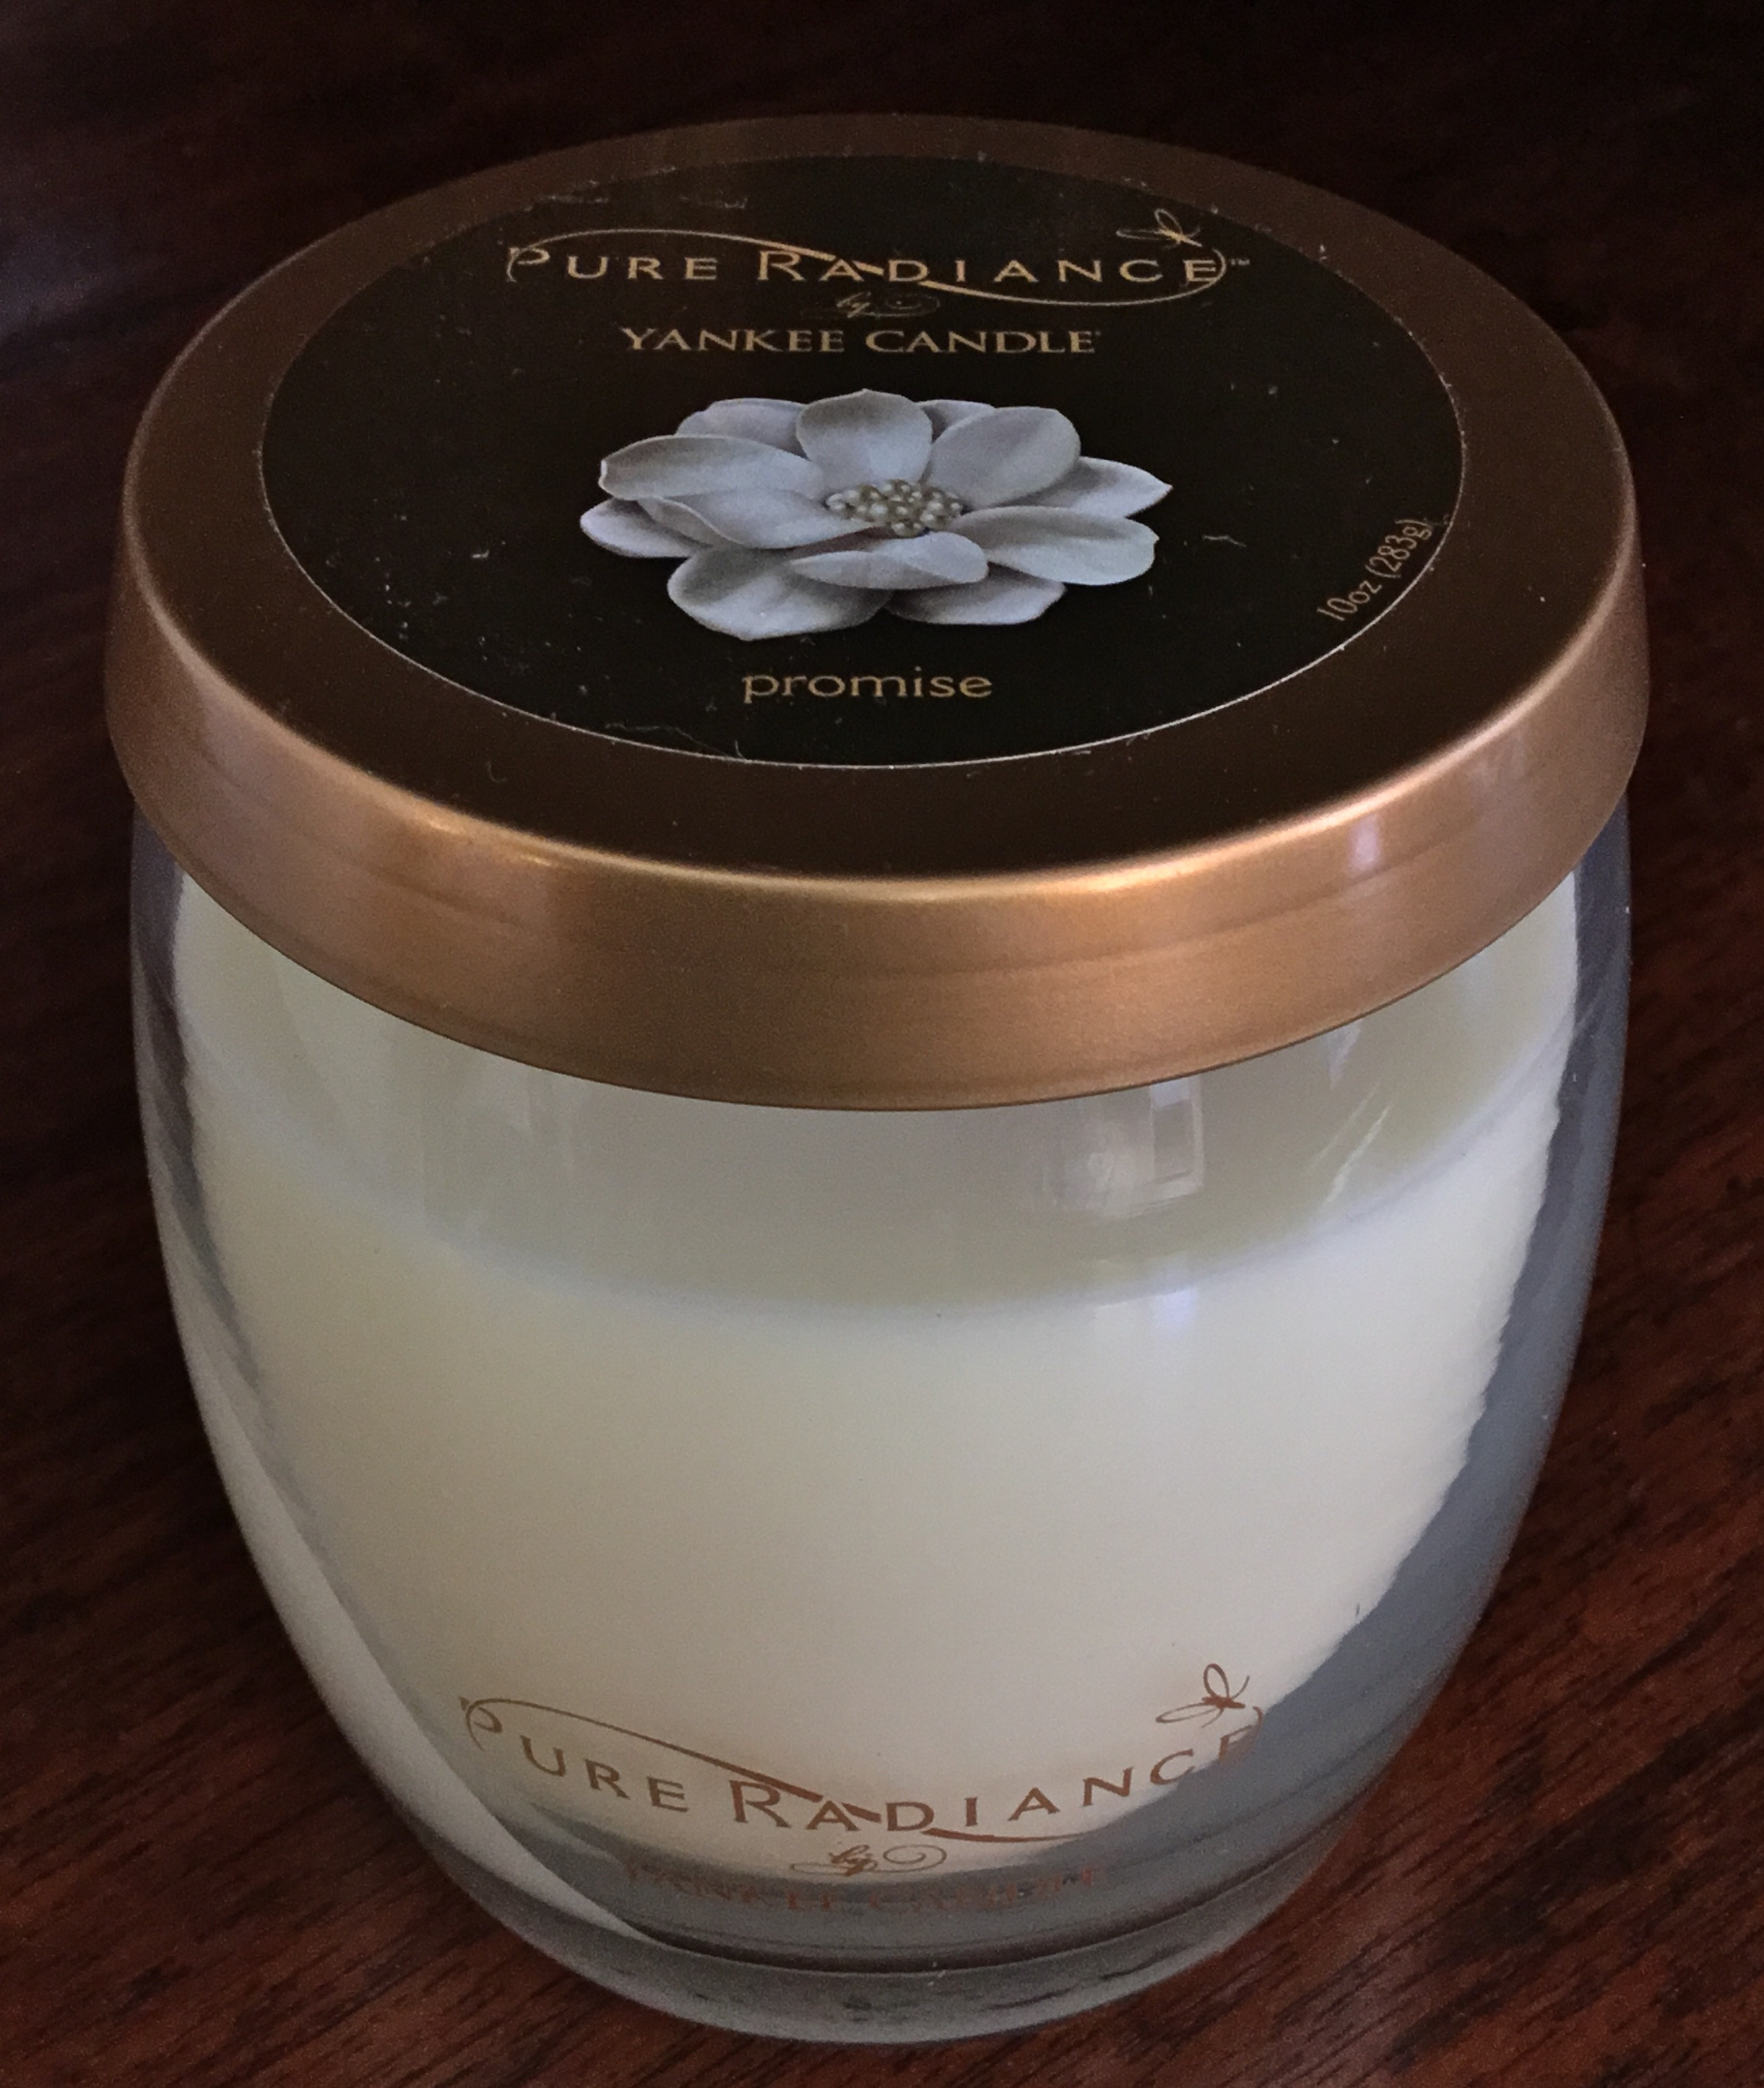 Yankee Candle Pure Radiance Candle, Promise